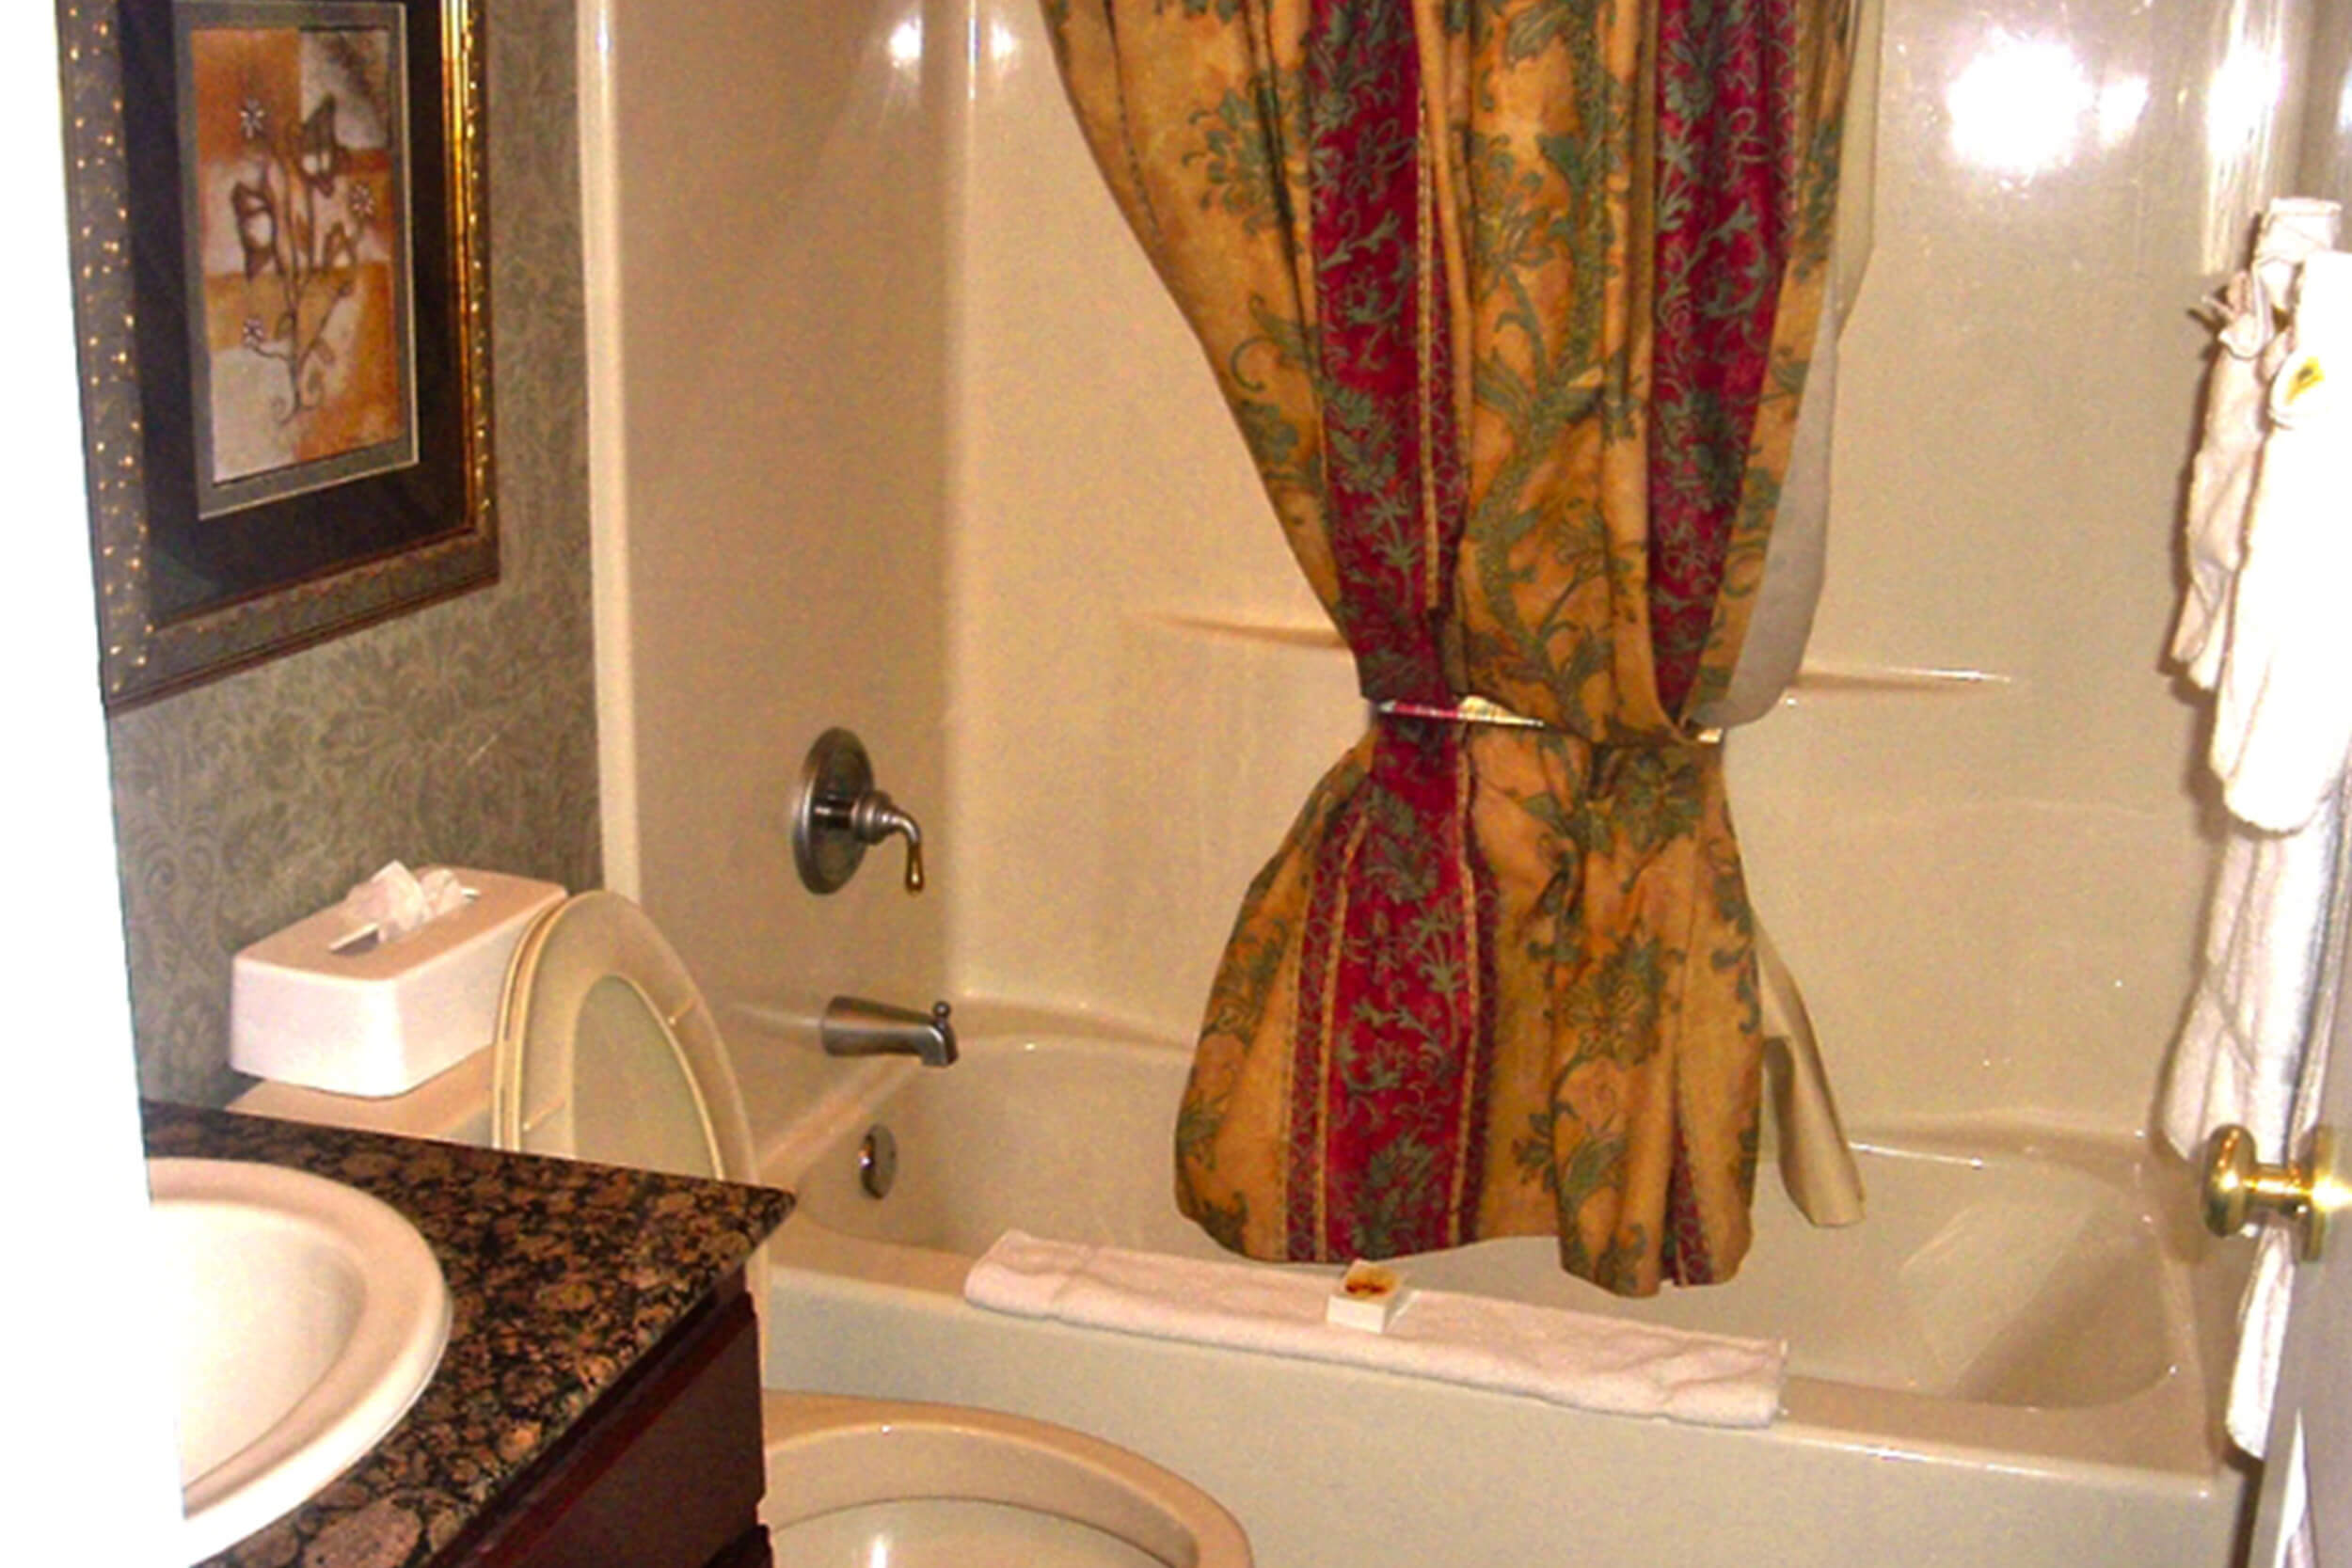 Westgate Tunica Resort one-bedroom villa full bathroom with shower/tub combination